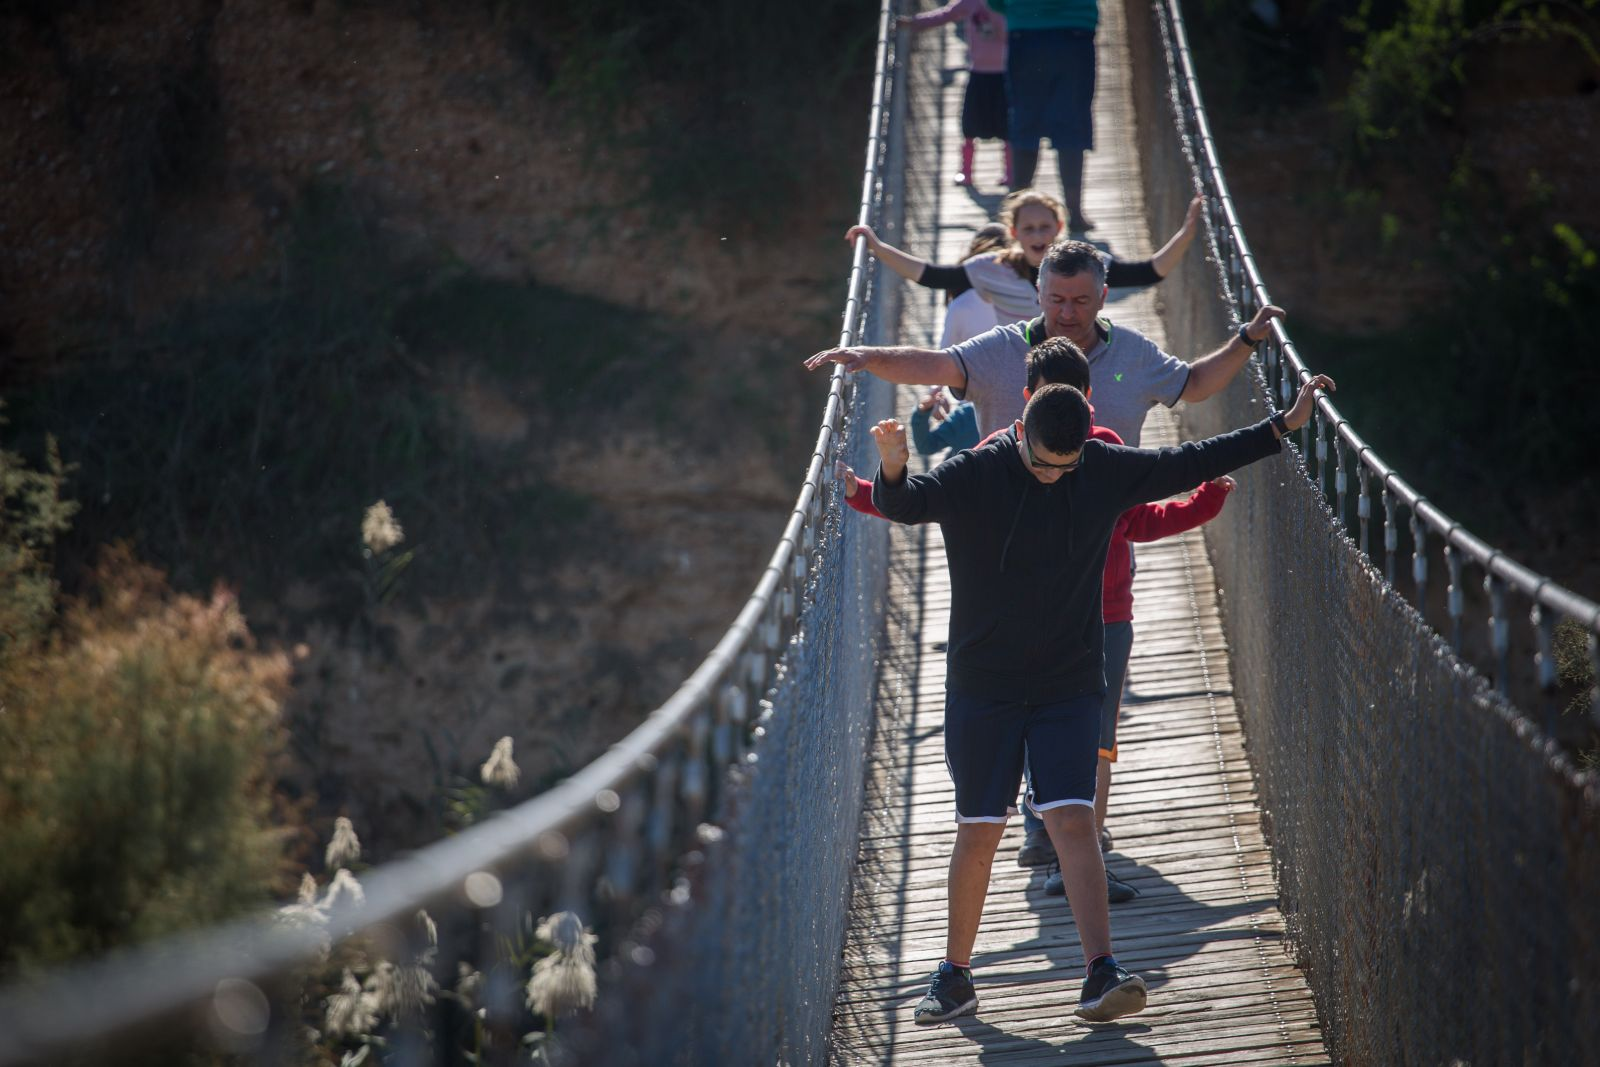 Israelis cross the hanging bridge at Besor River. Photo by Hadas Parush/FLASH90